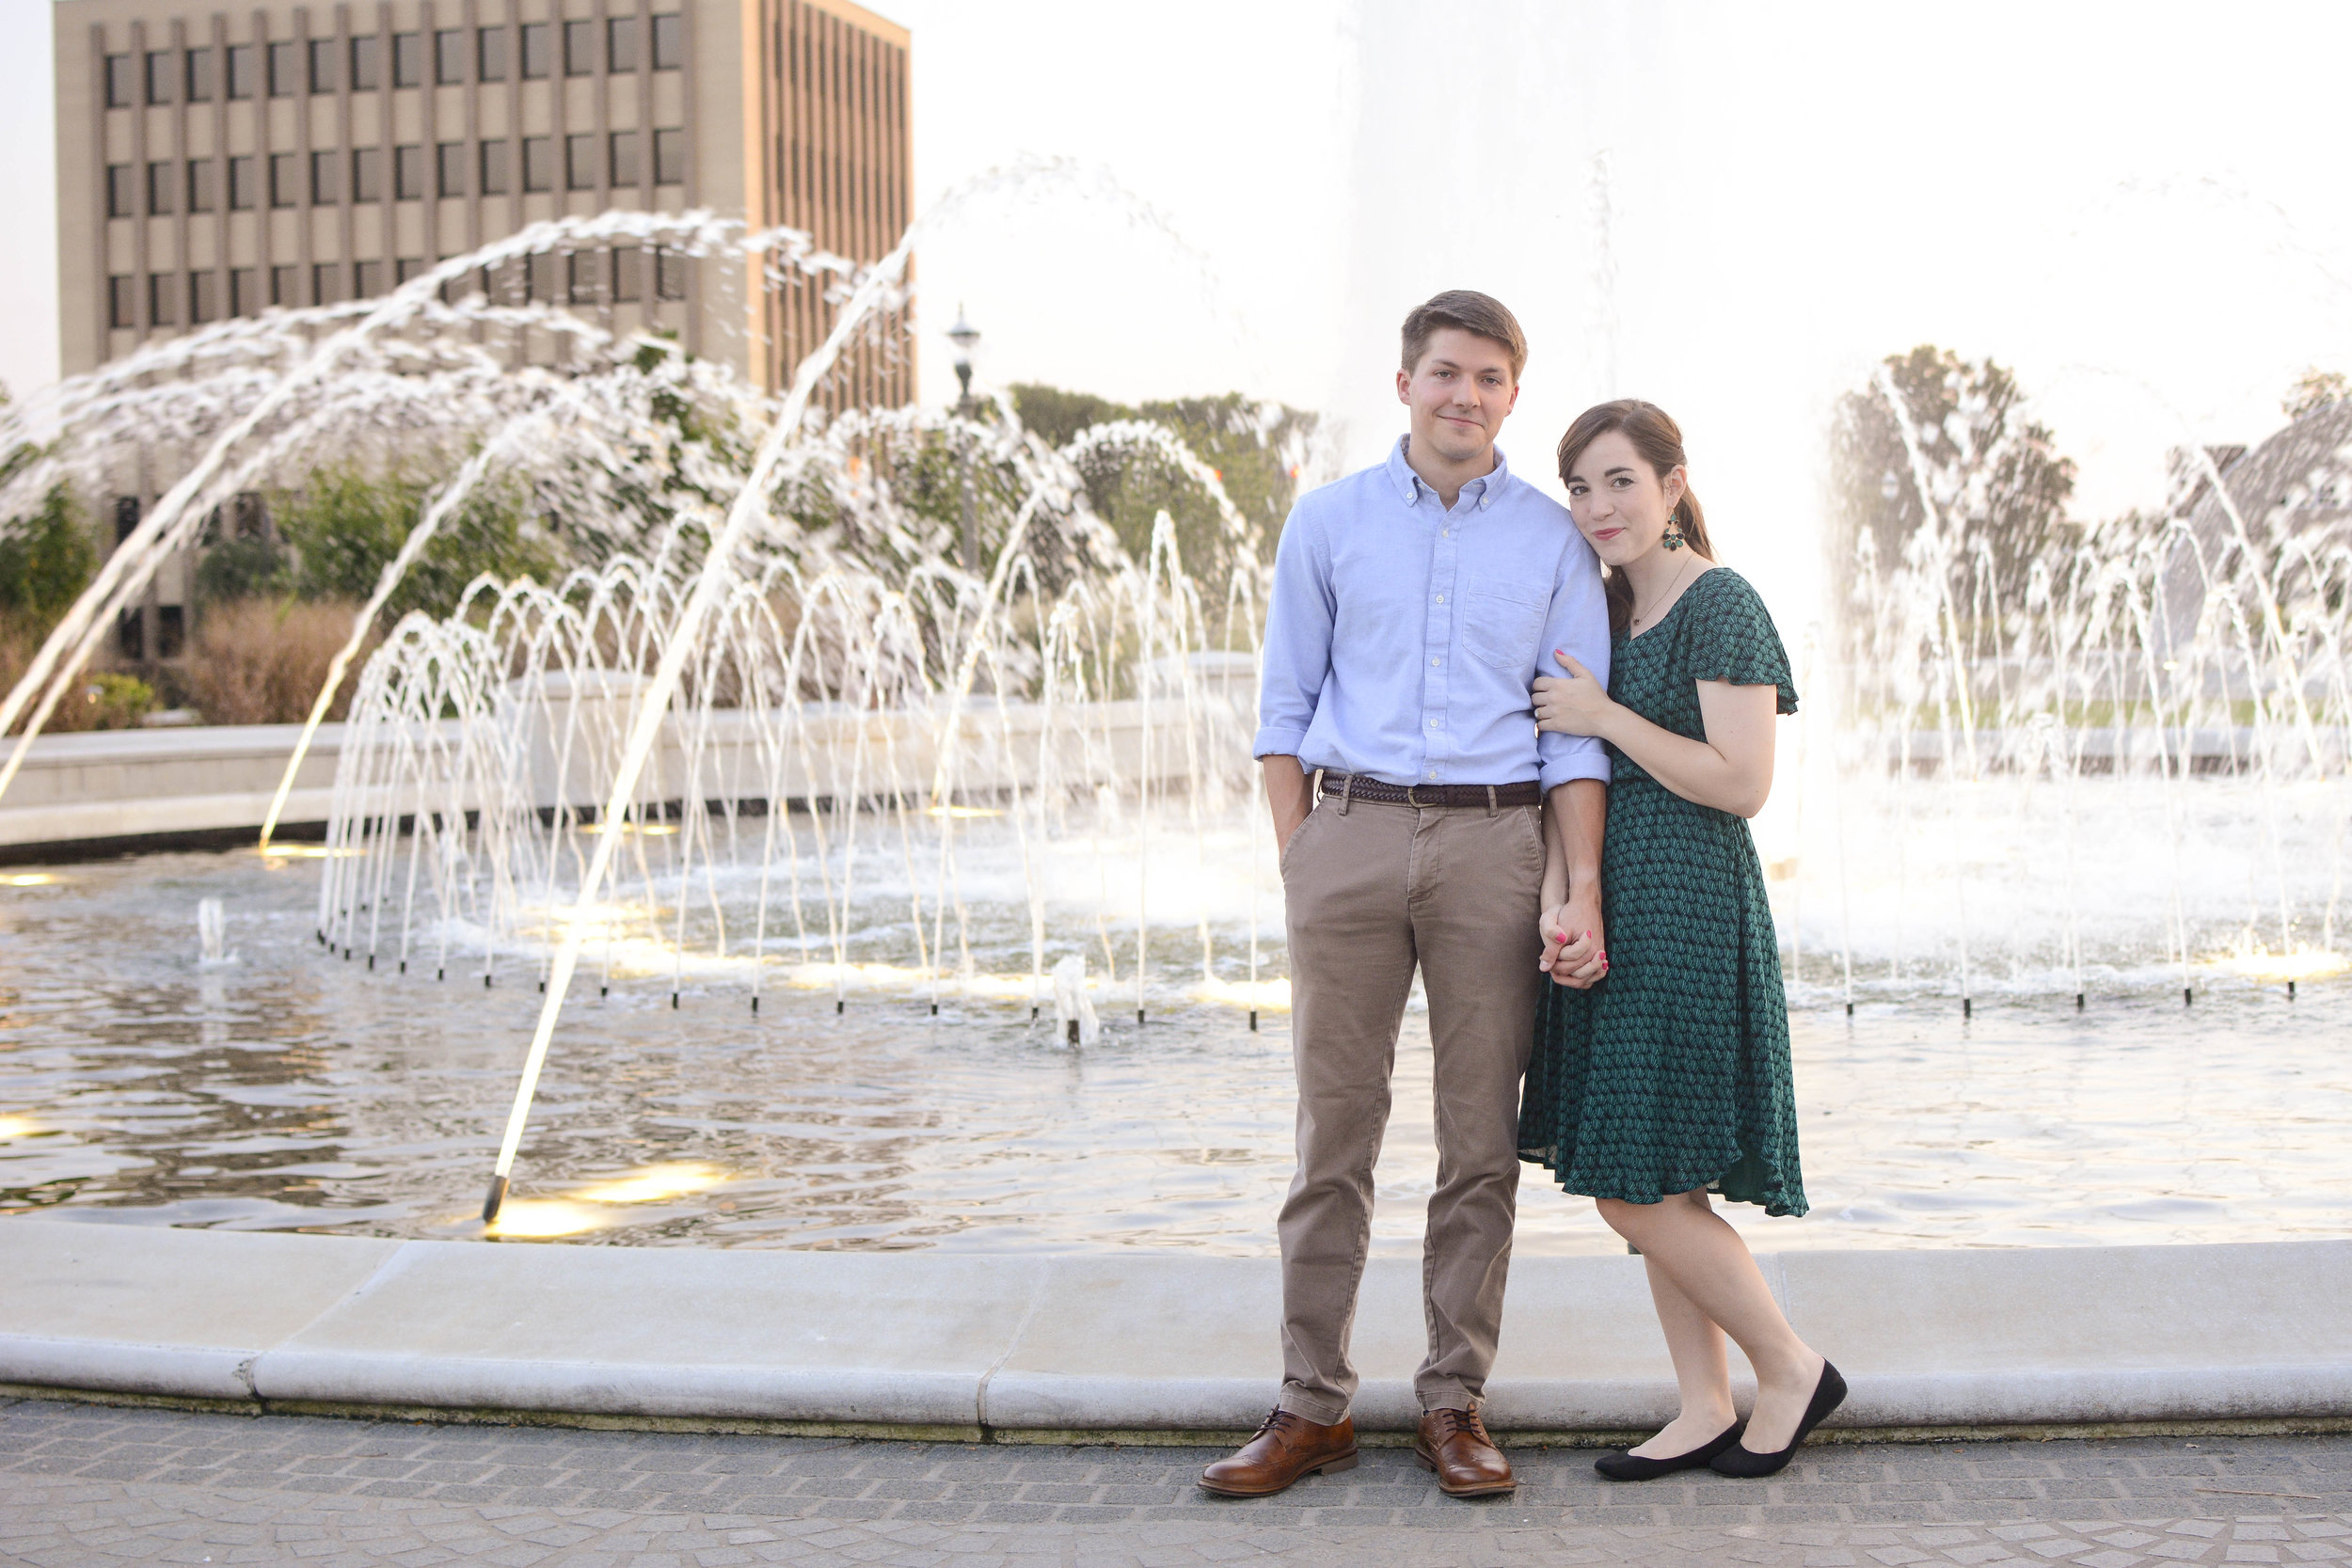 downtown Rock Hill fountain engagement photo